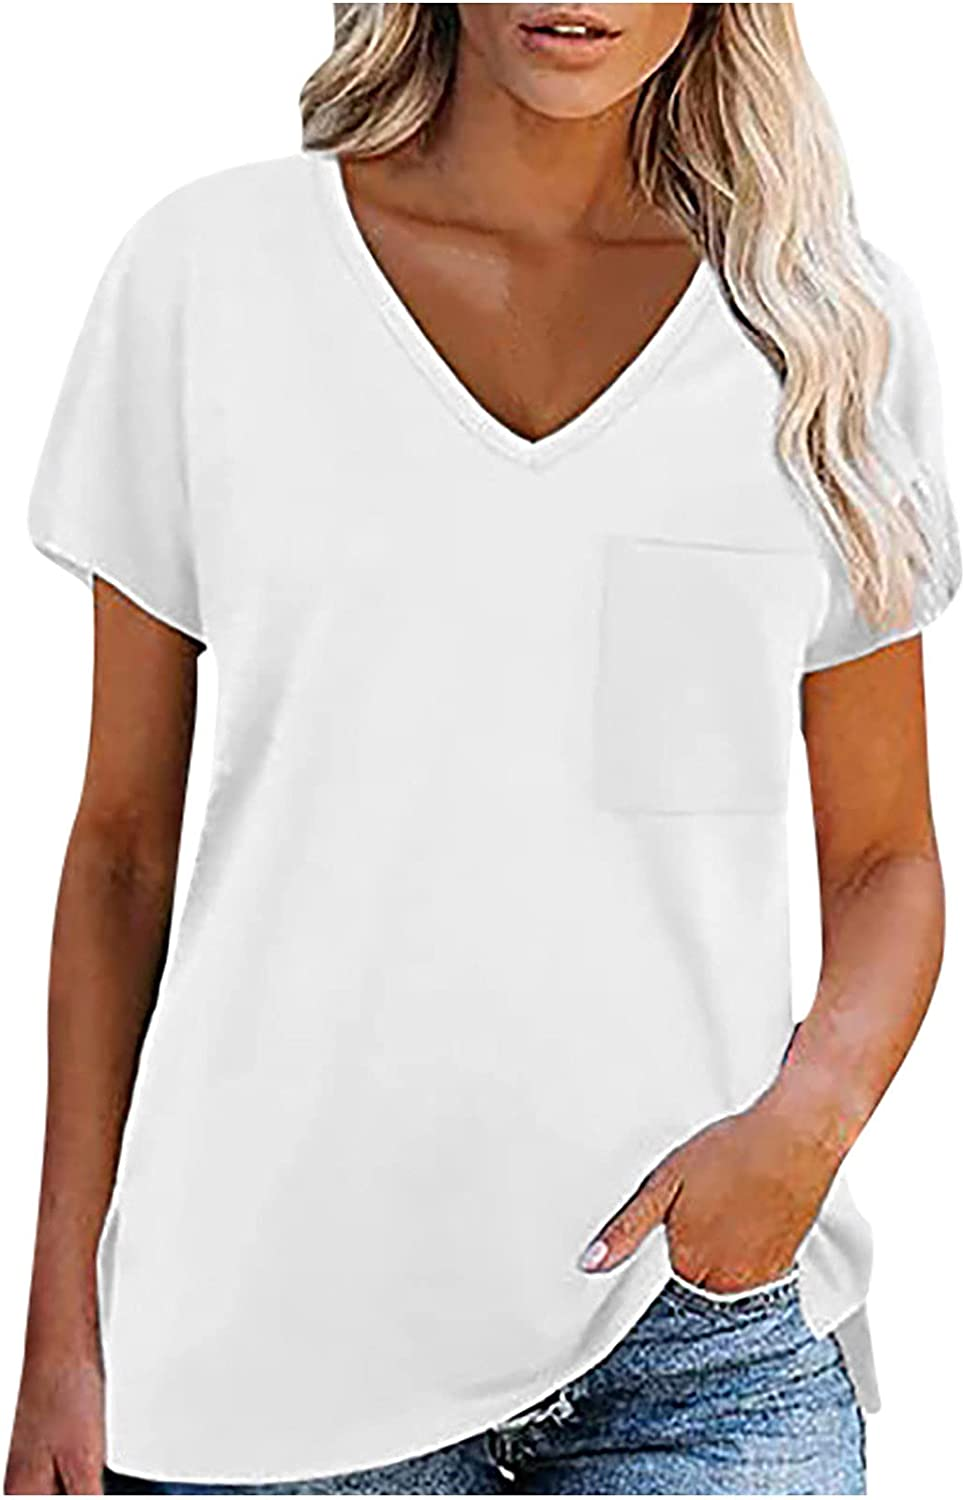 T-Shirt for Women Summer Fashion V-Neck Short Sleeve T-Shirt Solid Color Loose Blouse Tops